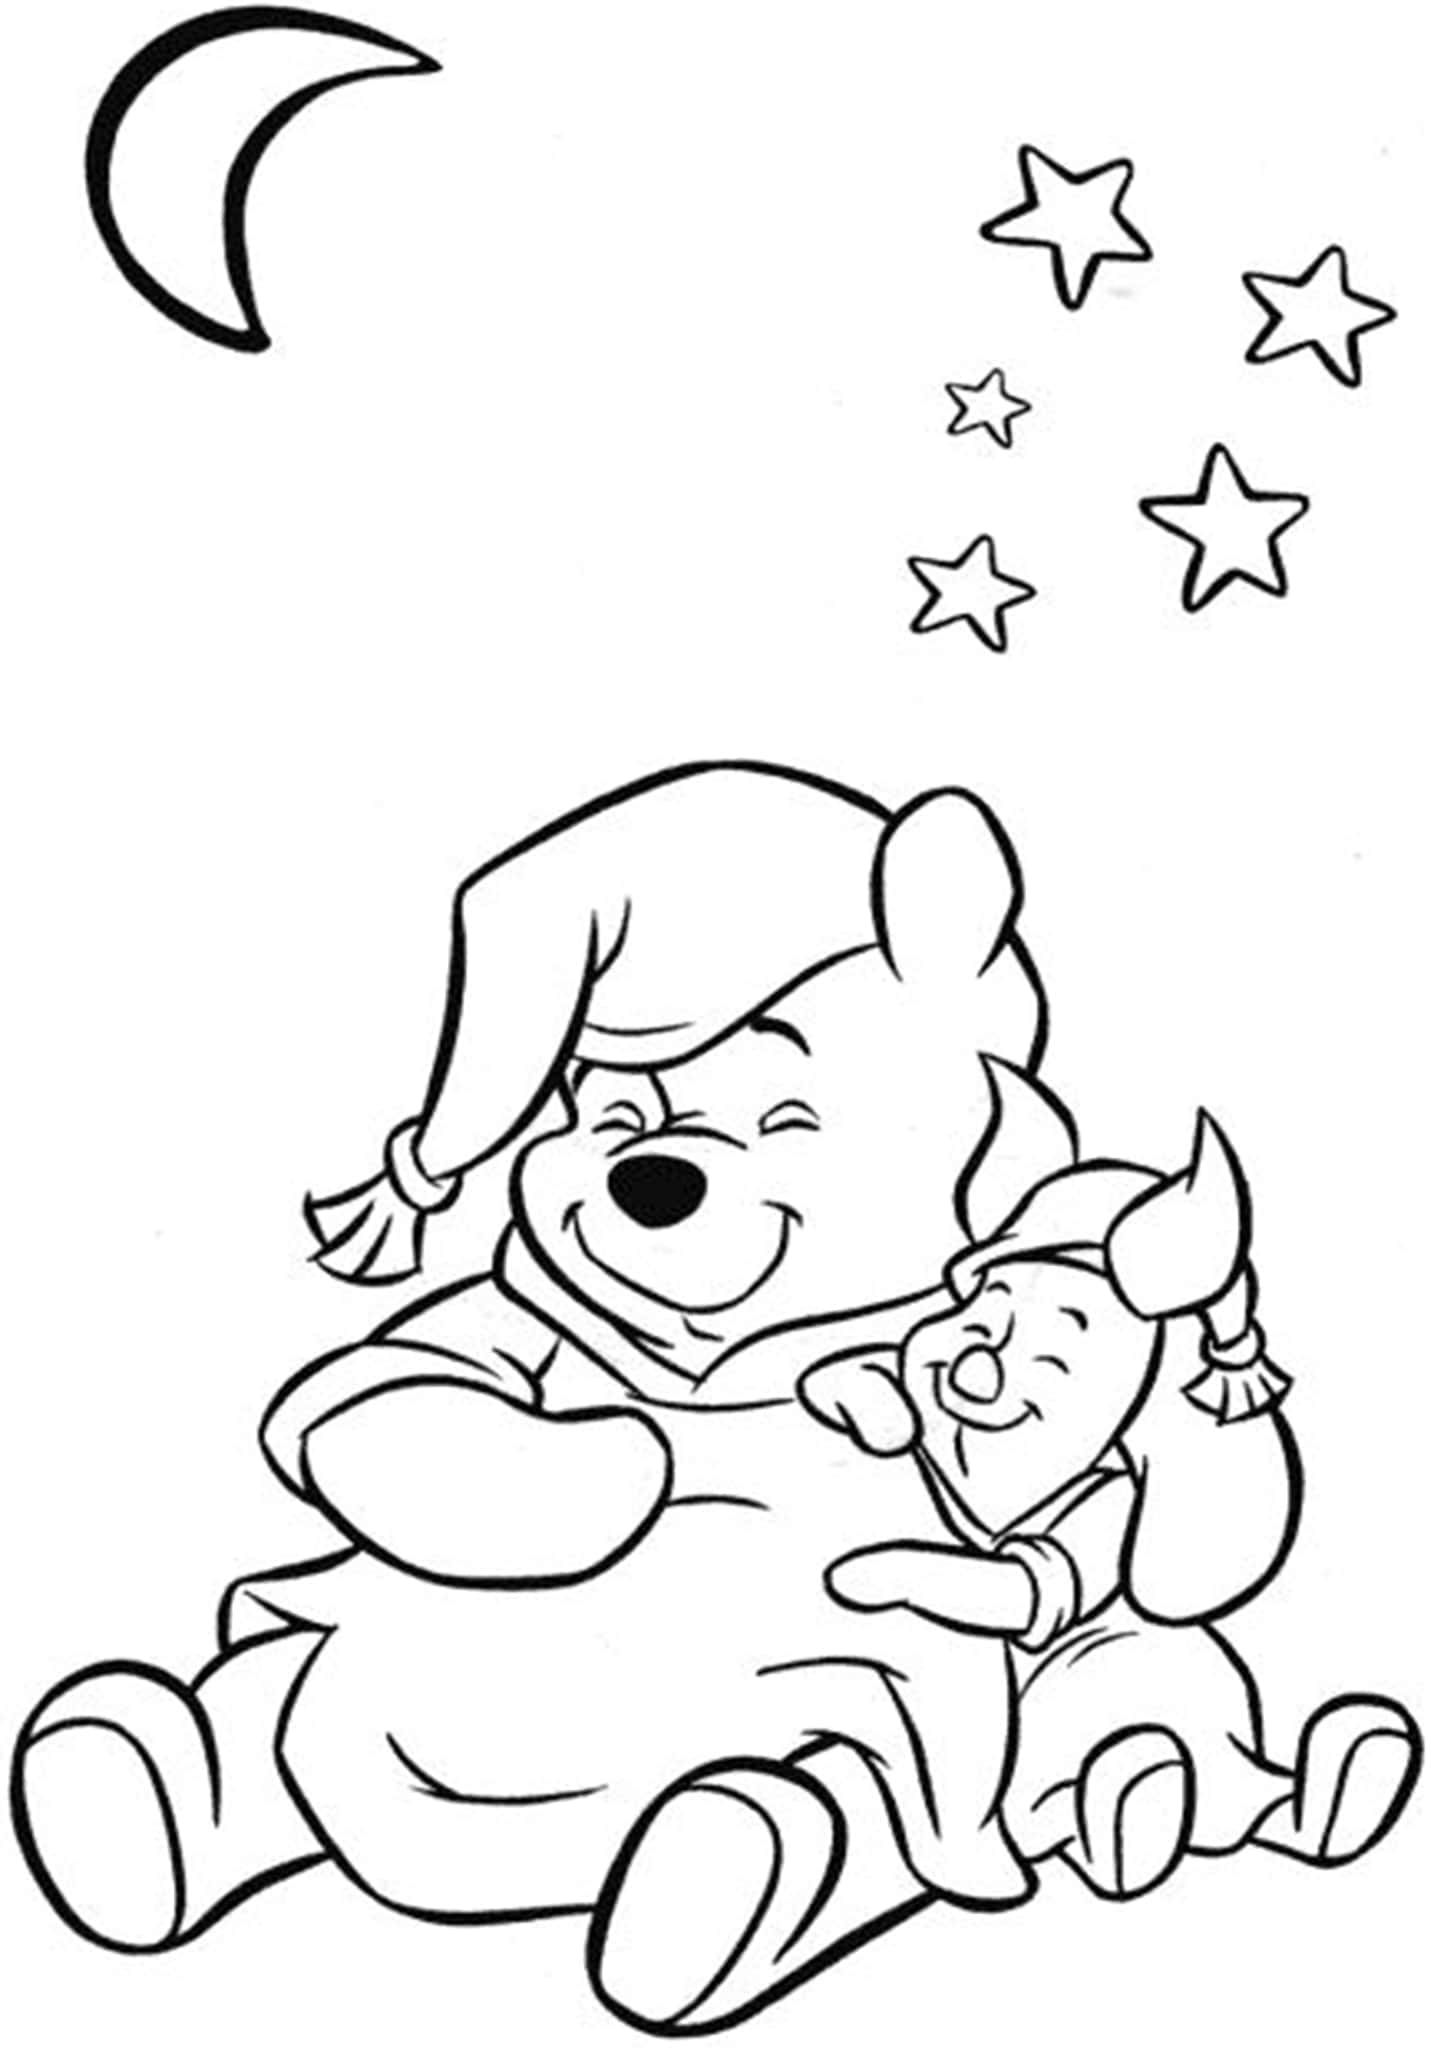 winnie the pooh rabbit coloring pages winnie the pooh and rabbit coloring pages coloring home coloring winnie the pages rabbit pooh